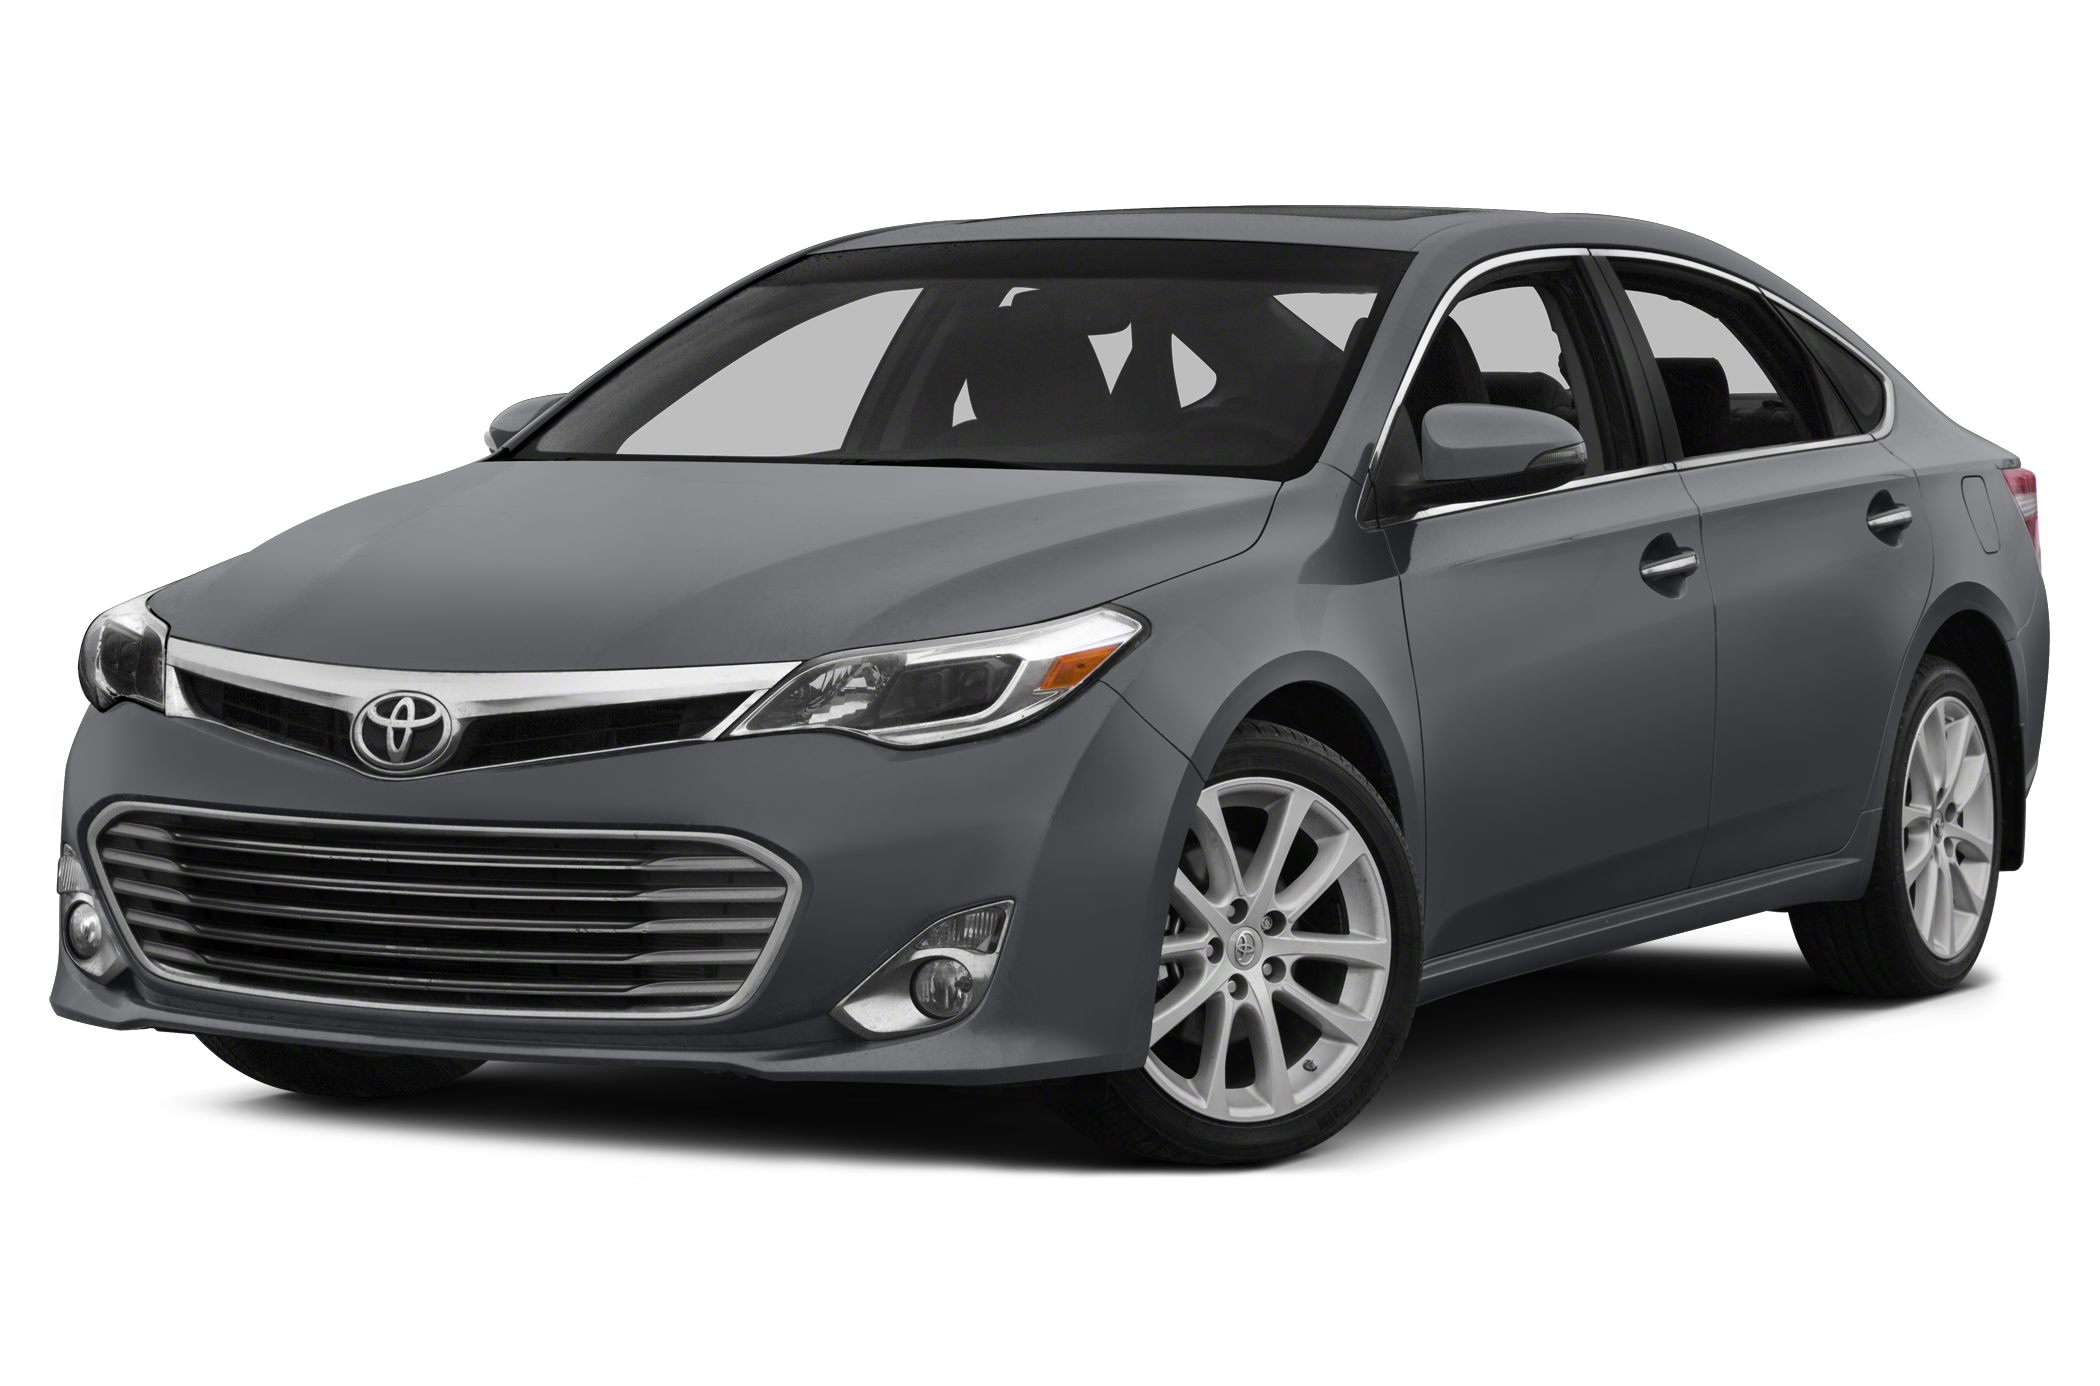 2014 Toyota Avalon XLE CARFAX 1-Owner EPA 31 MPG Hwy21 MPG City XLE trim Heated Seats Bluetoo